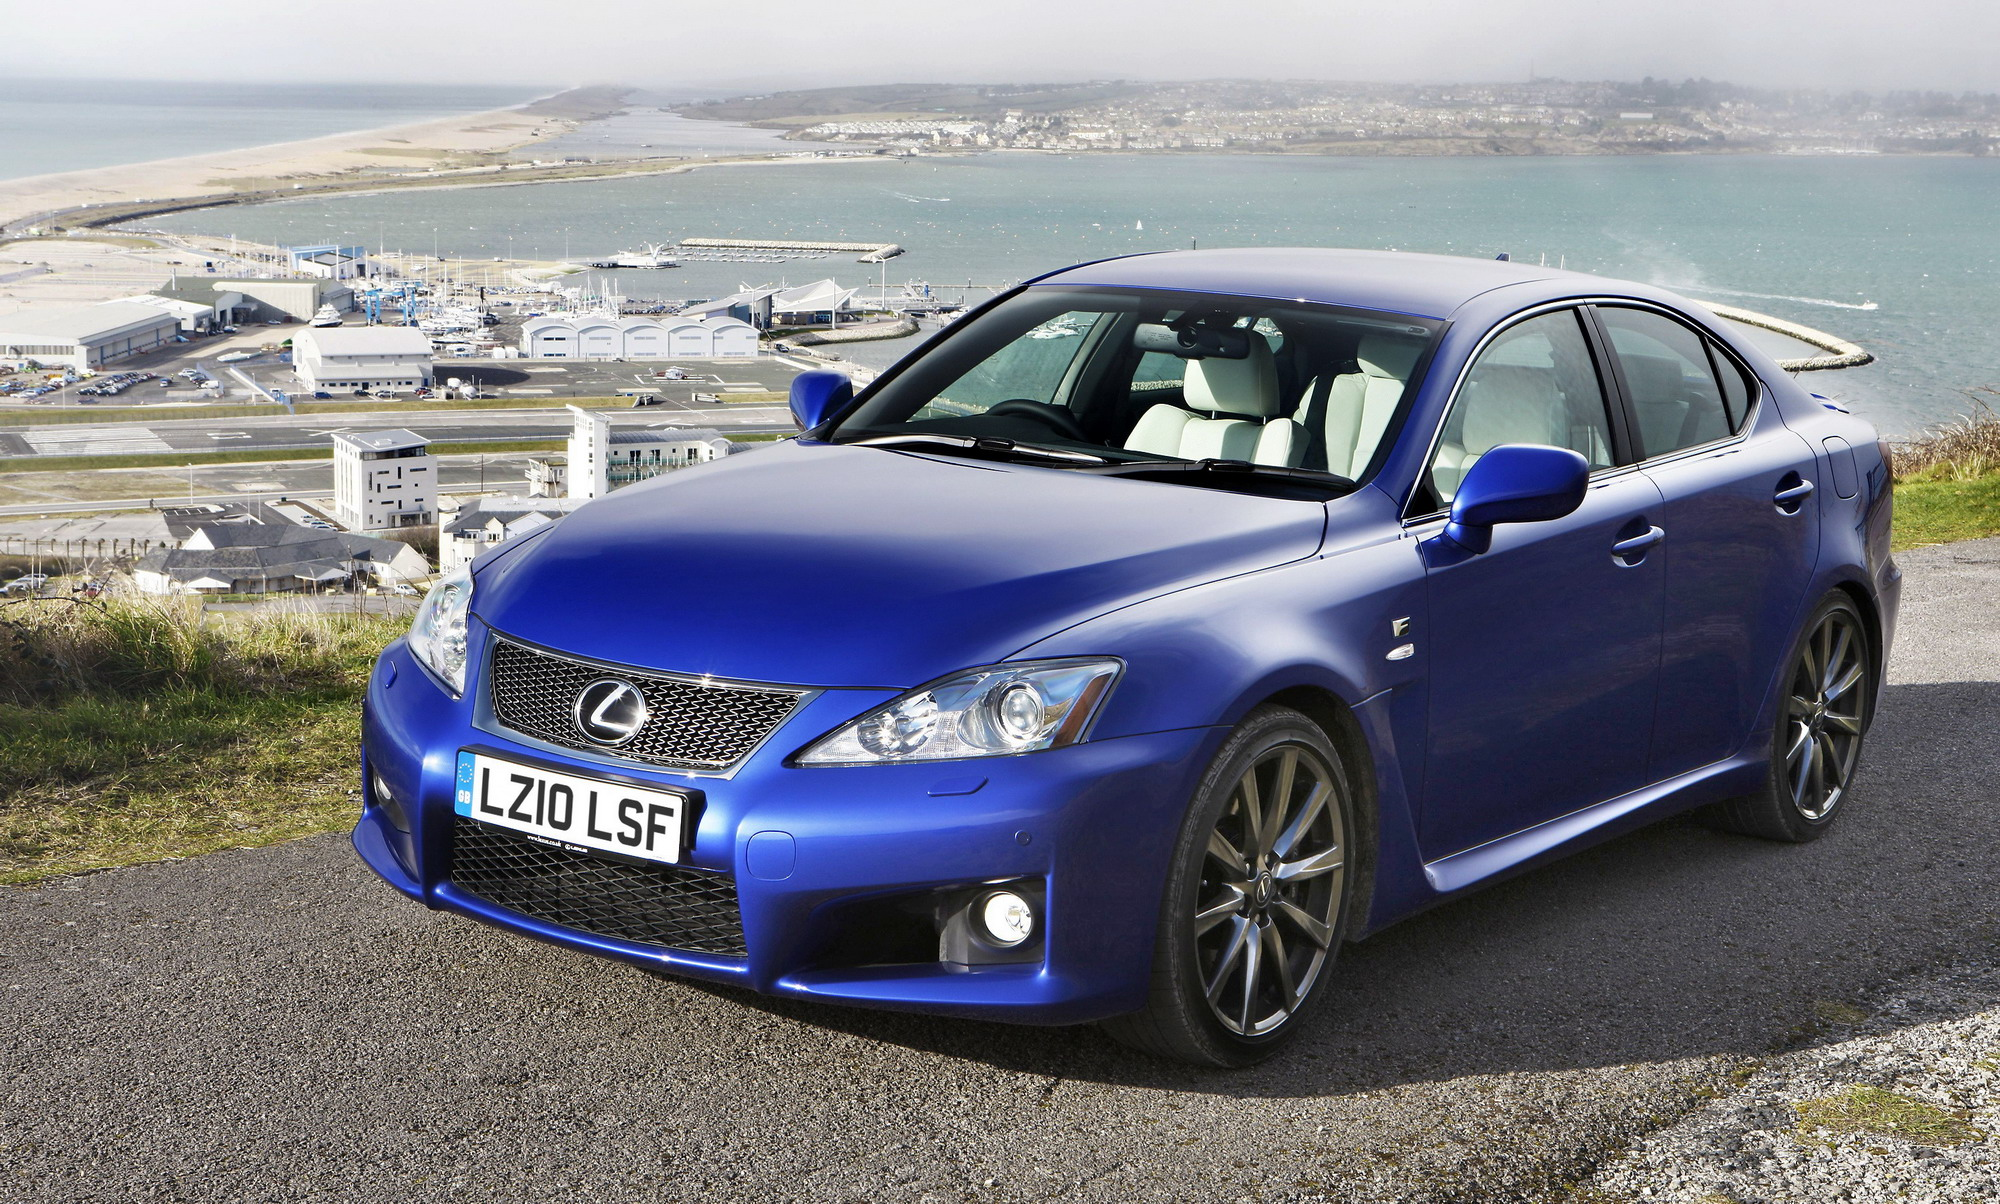 Perfect 2011 Lexus IS F | Top Speed. »